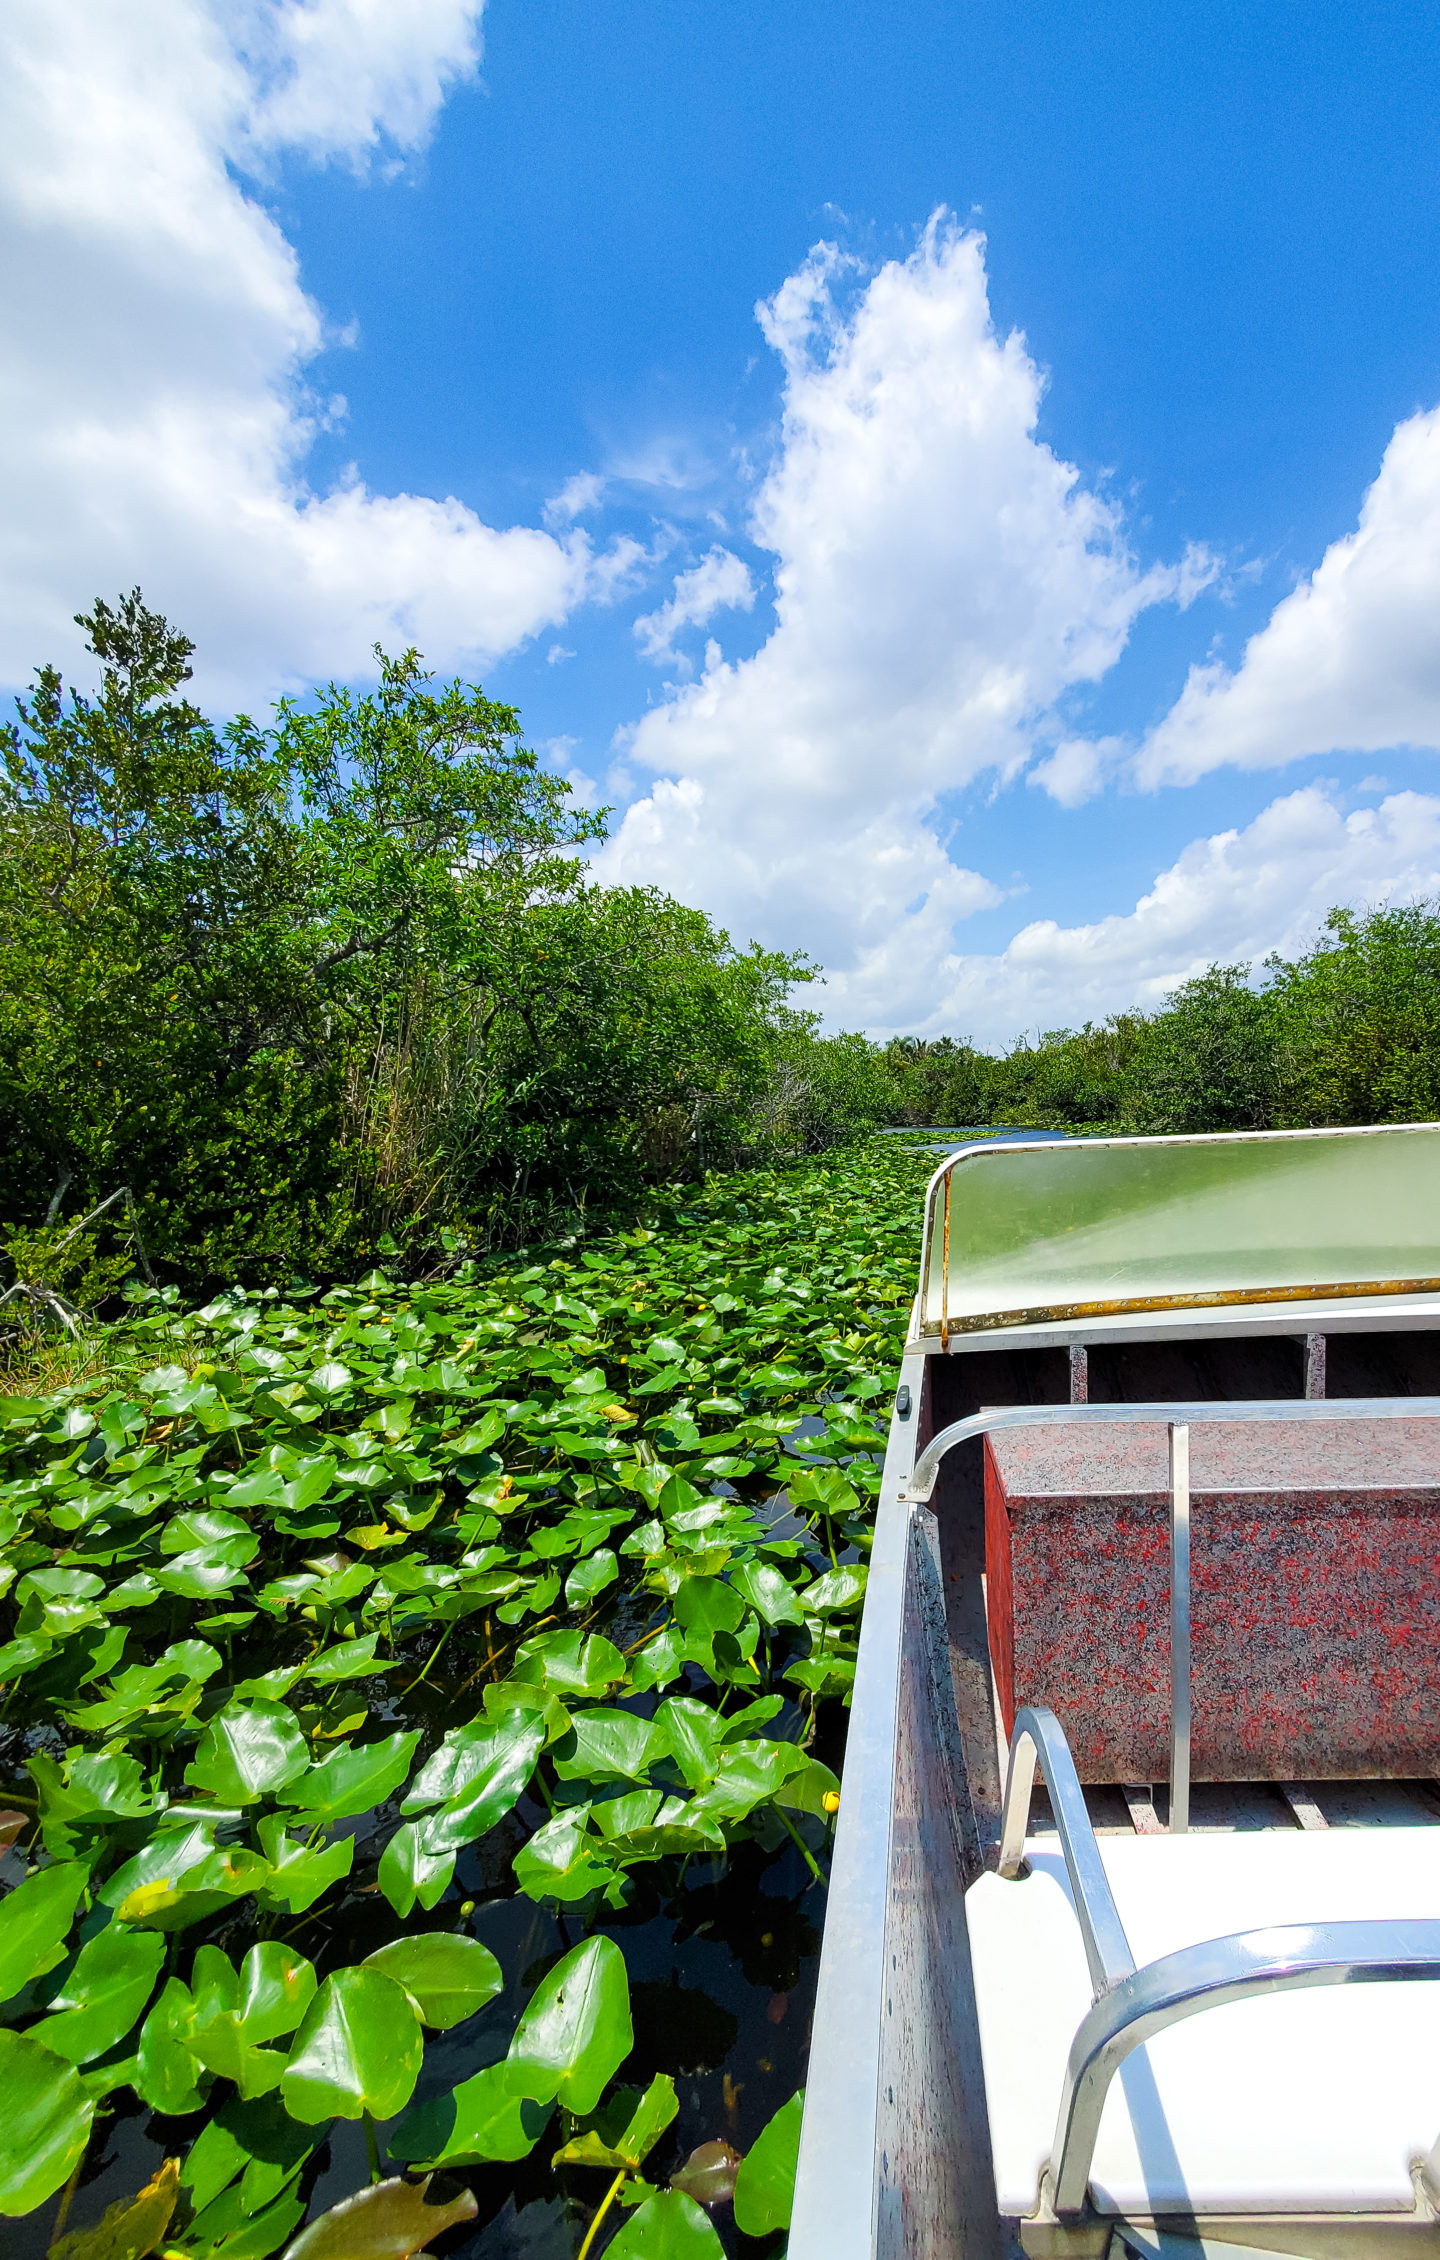 Looking for Cocodriles and Alligators at the Everglades